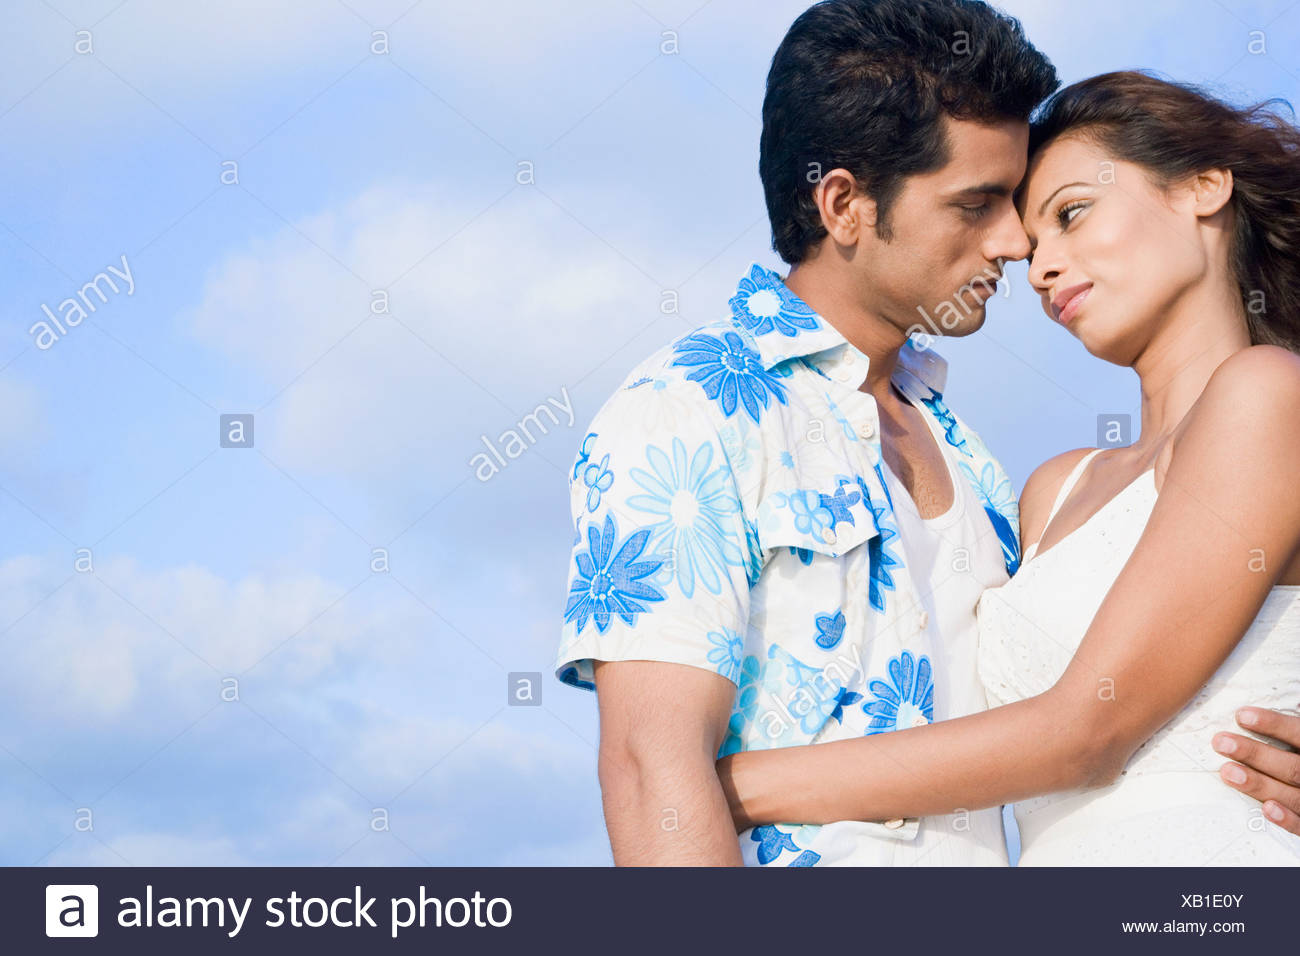 side profile of a young couple romancing stock photo 282160059 alamy